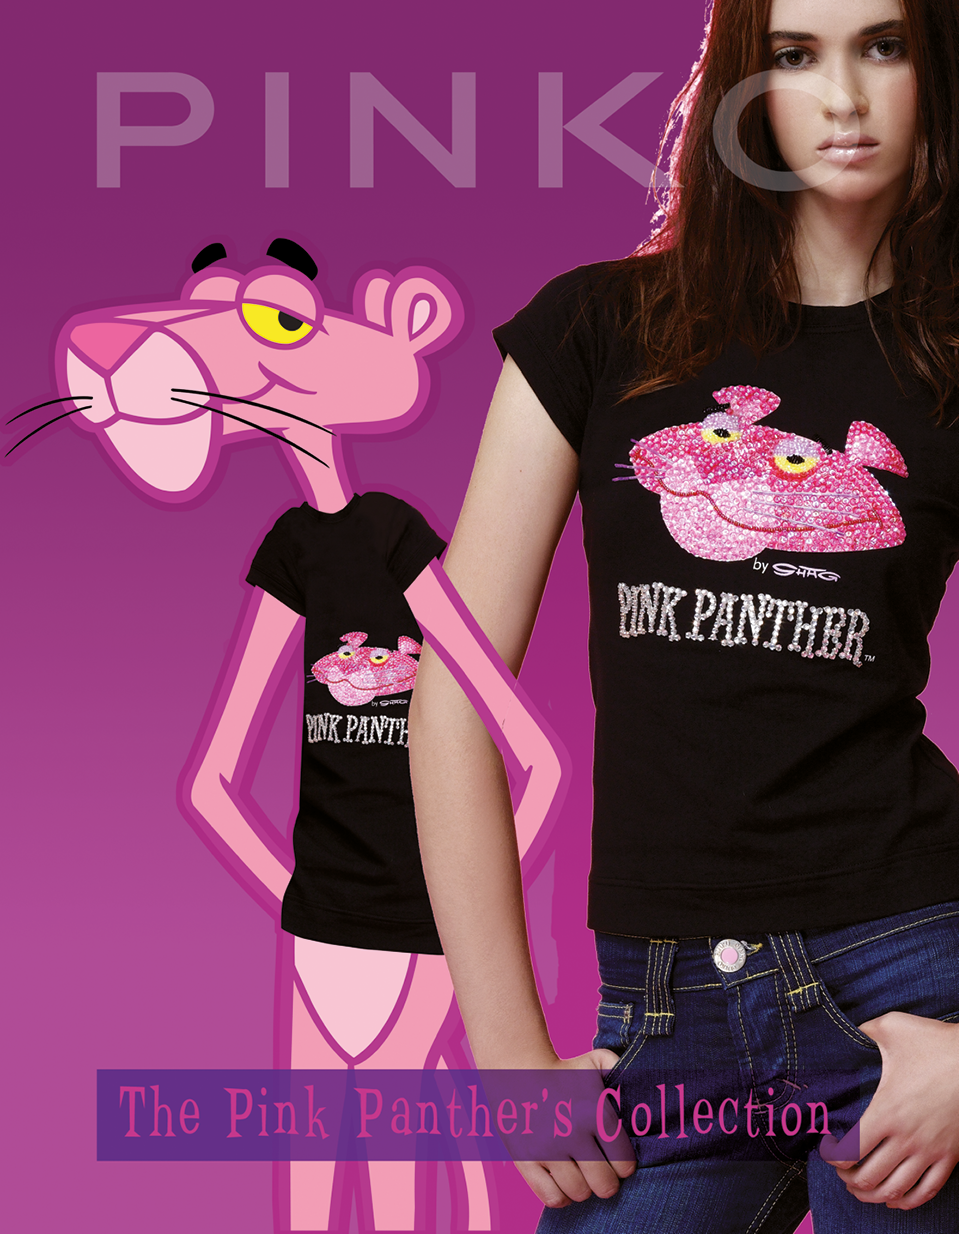 <b>Pink Panther Anniversary Collection</b><br><a href='/it/pink-panther-anniversary-collection.php'>Scopri il progetto</a>